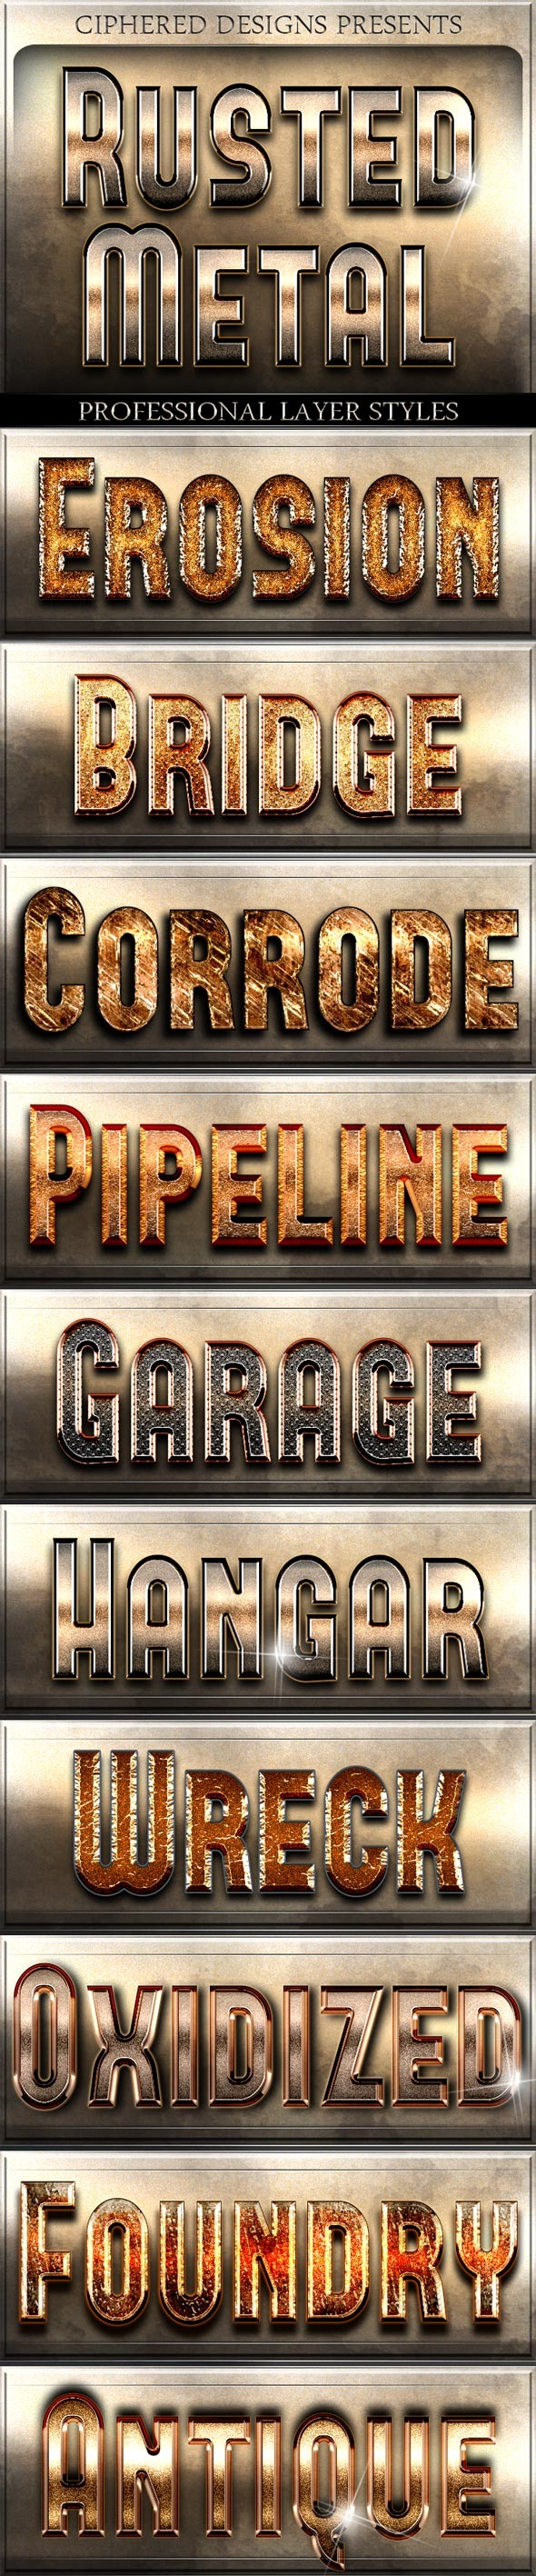 Rusted Metal - Professional Layer Styles - Text Effects Styles